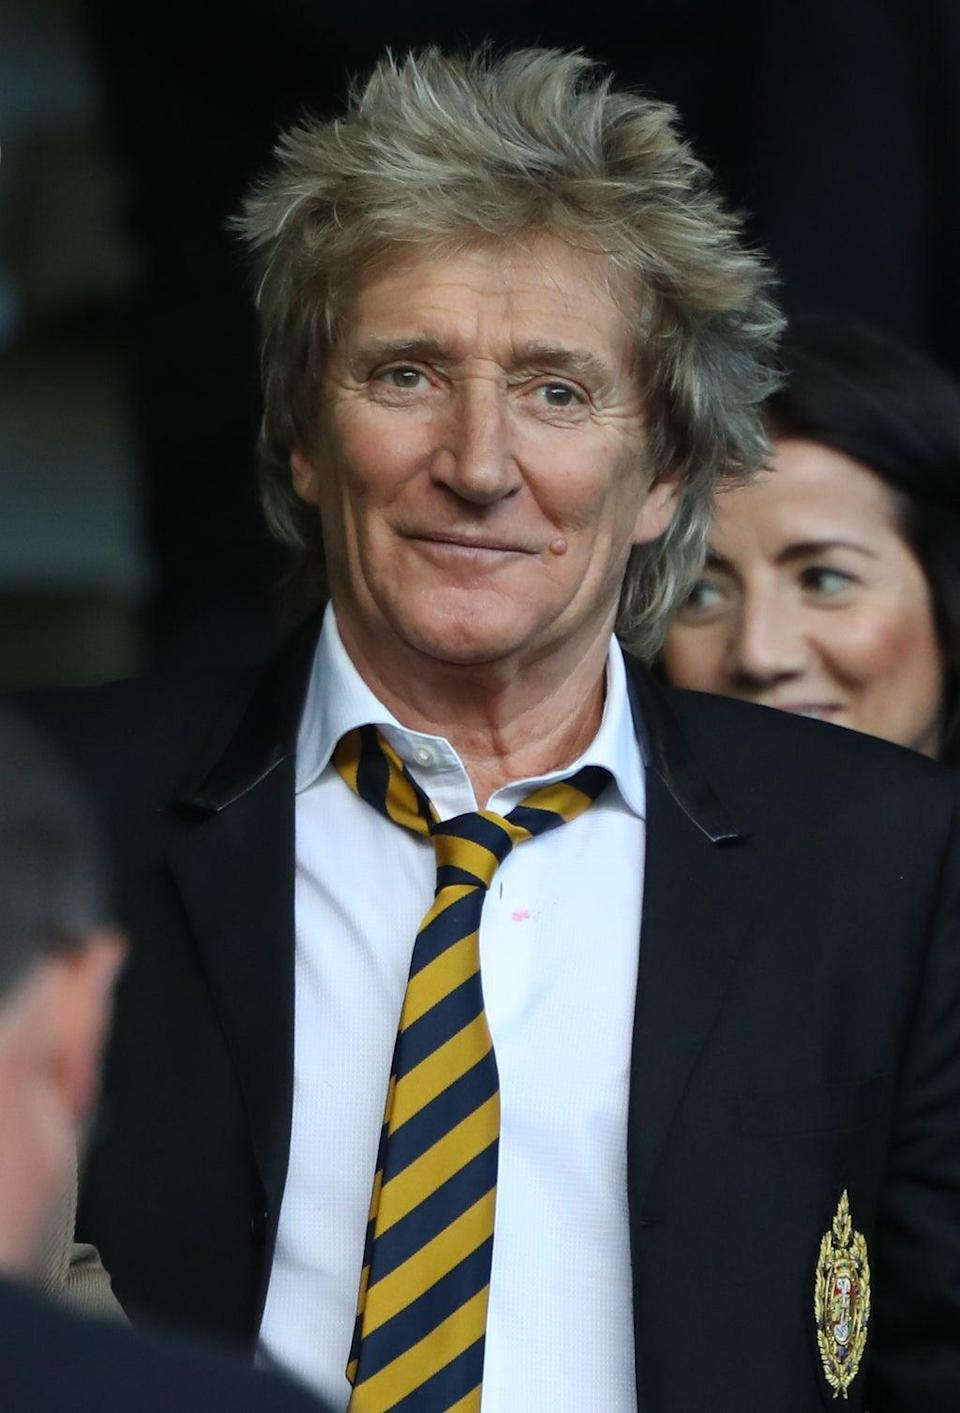 Sir Rod Stewart's alleged assault case in Florida is drawing to a conclusion (Andrew Milligan/PA) (PA Archive)